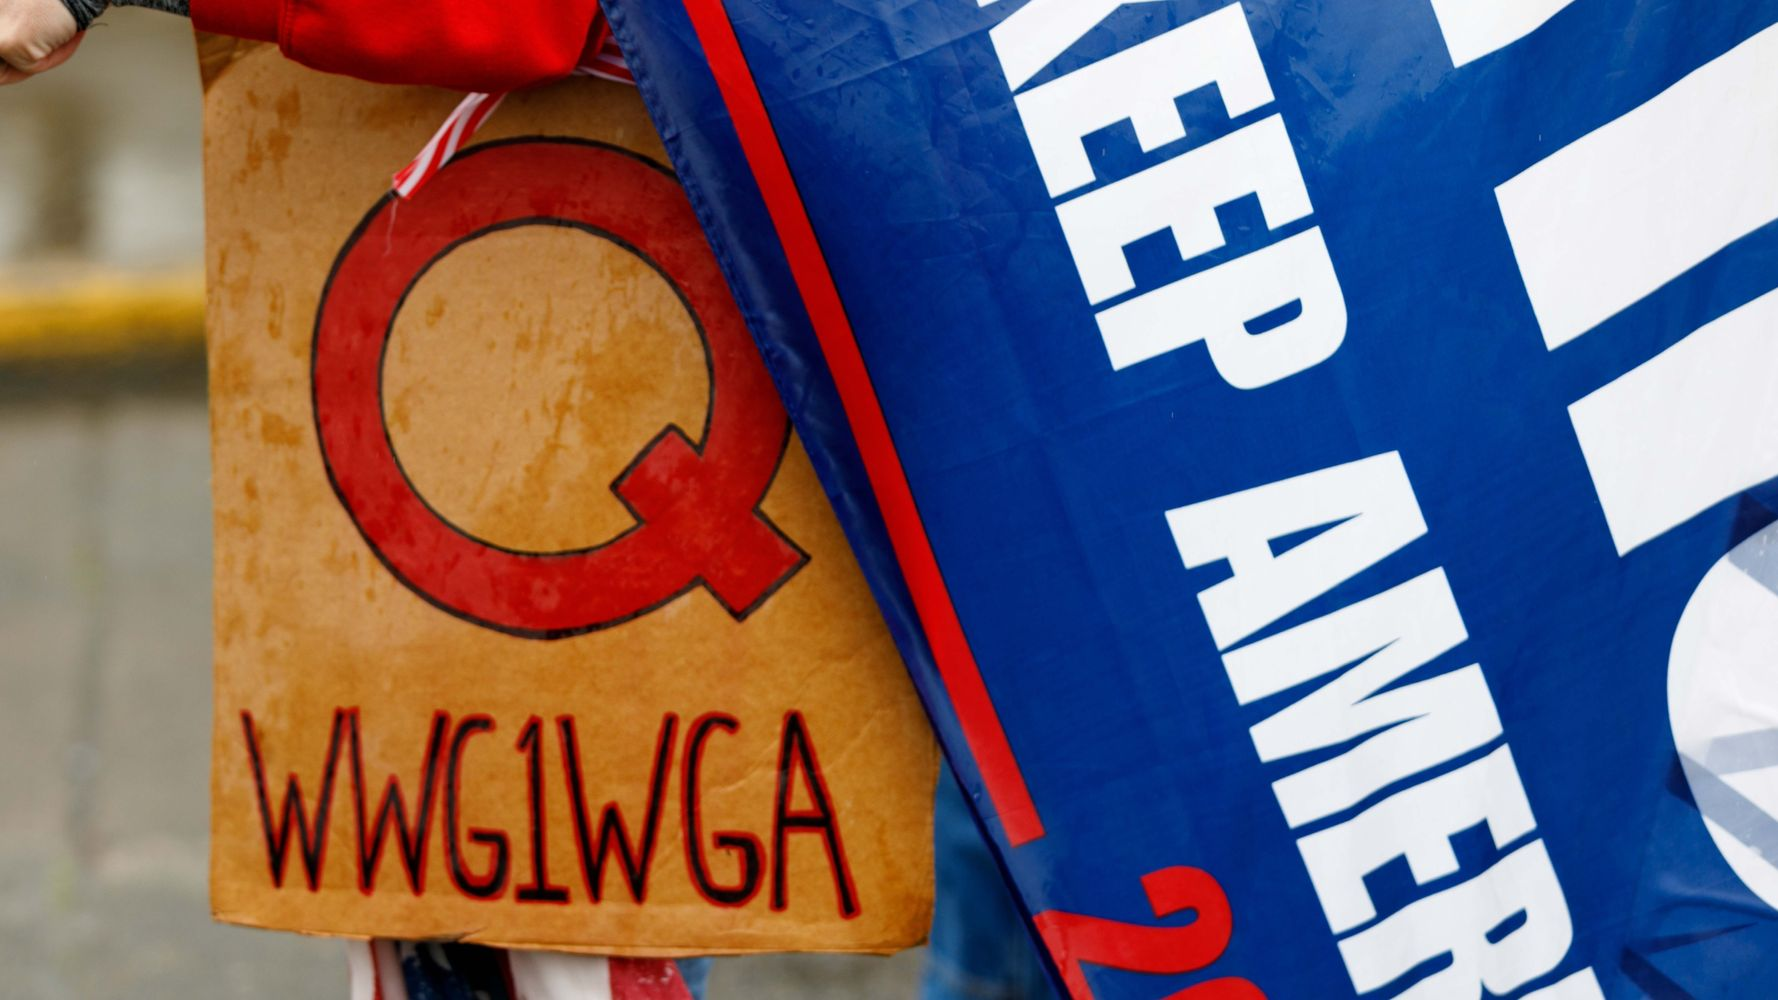 Twitter Bans Thousands Of QAnon Accounts As Part Of Crackdown On Conspiracy Movement